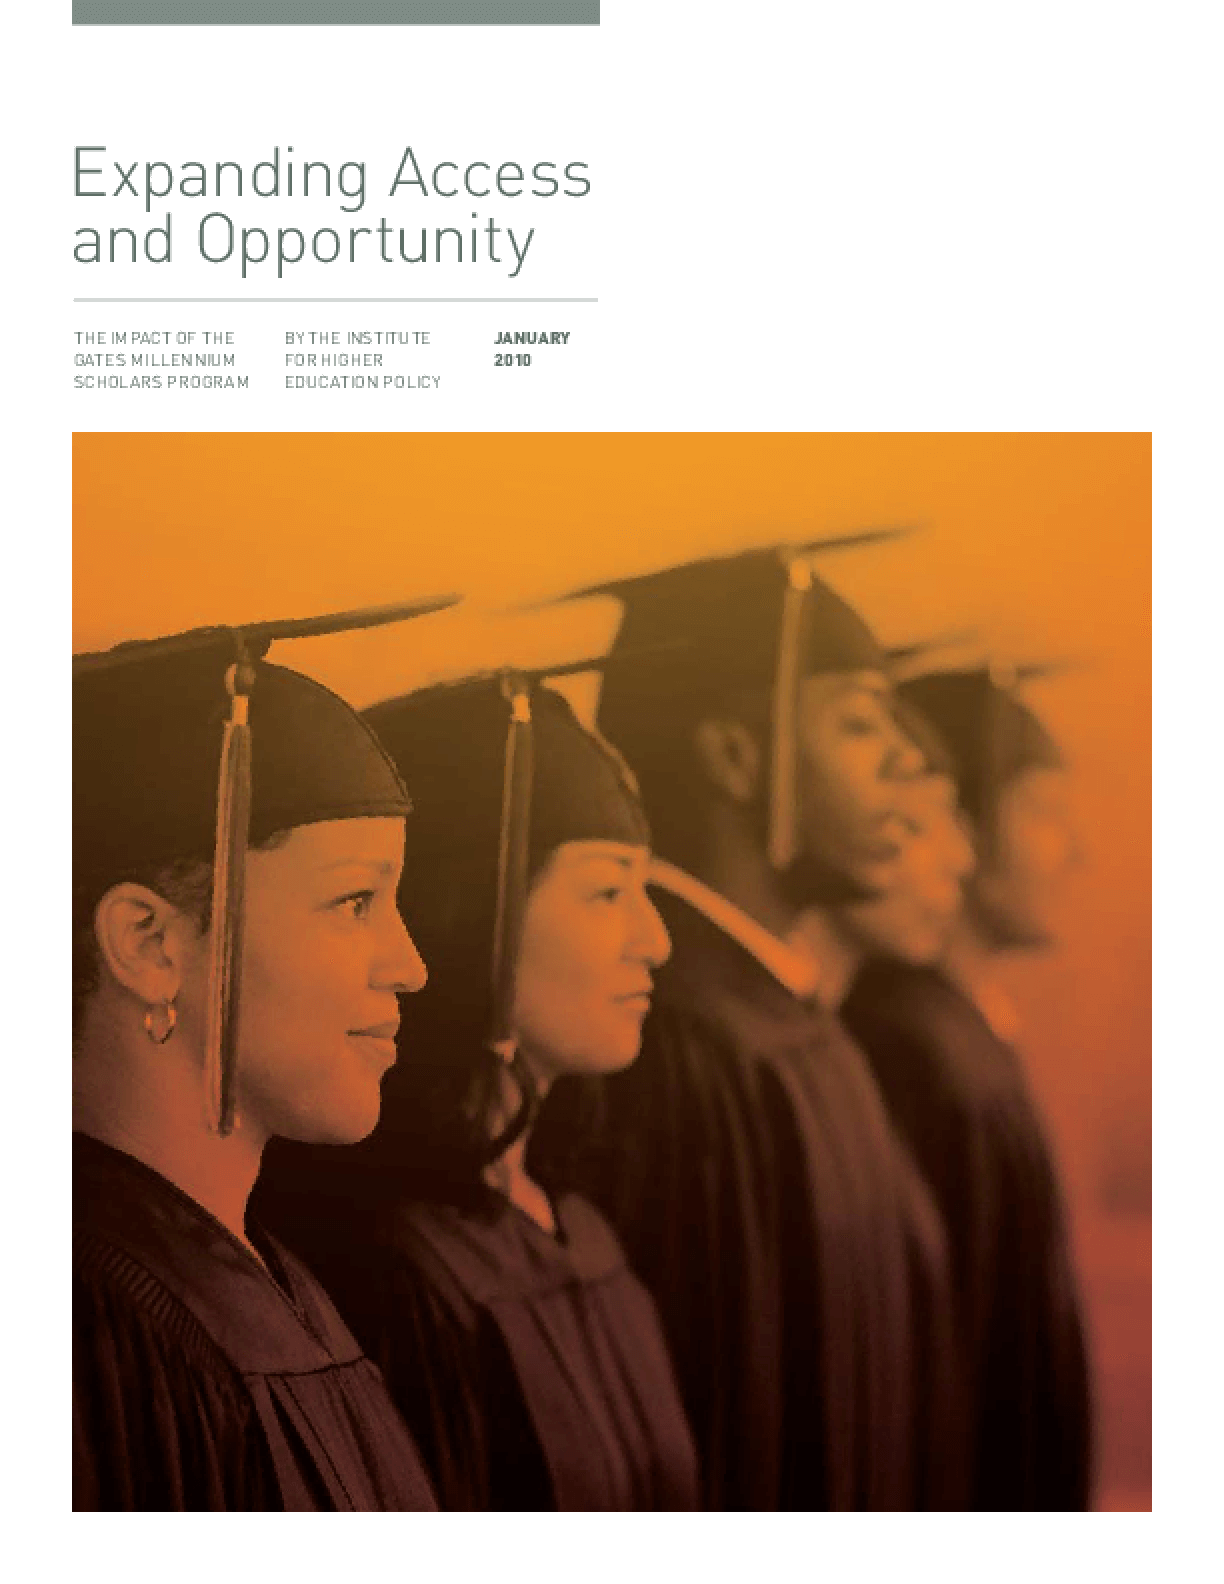 Expanding Access and Opportunity: The Impact of the Gates Millennium Scholars Program